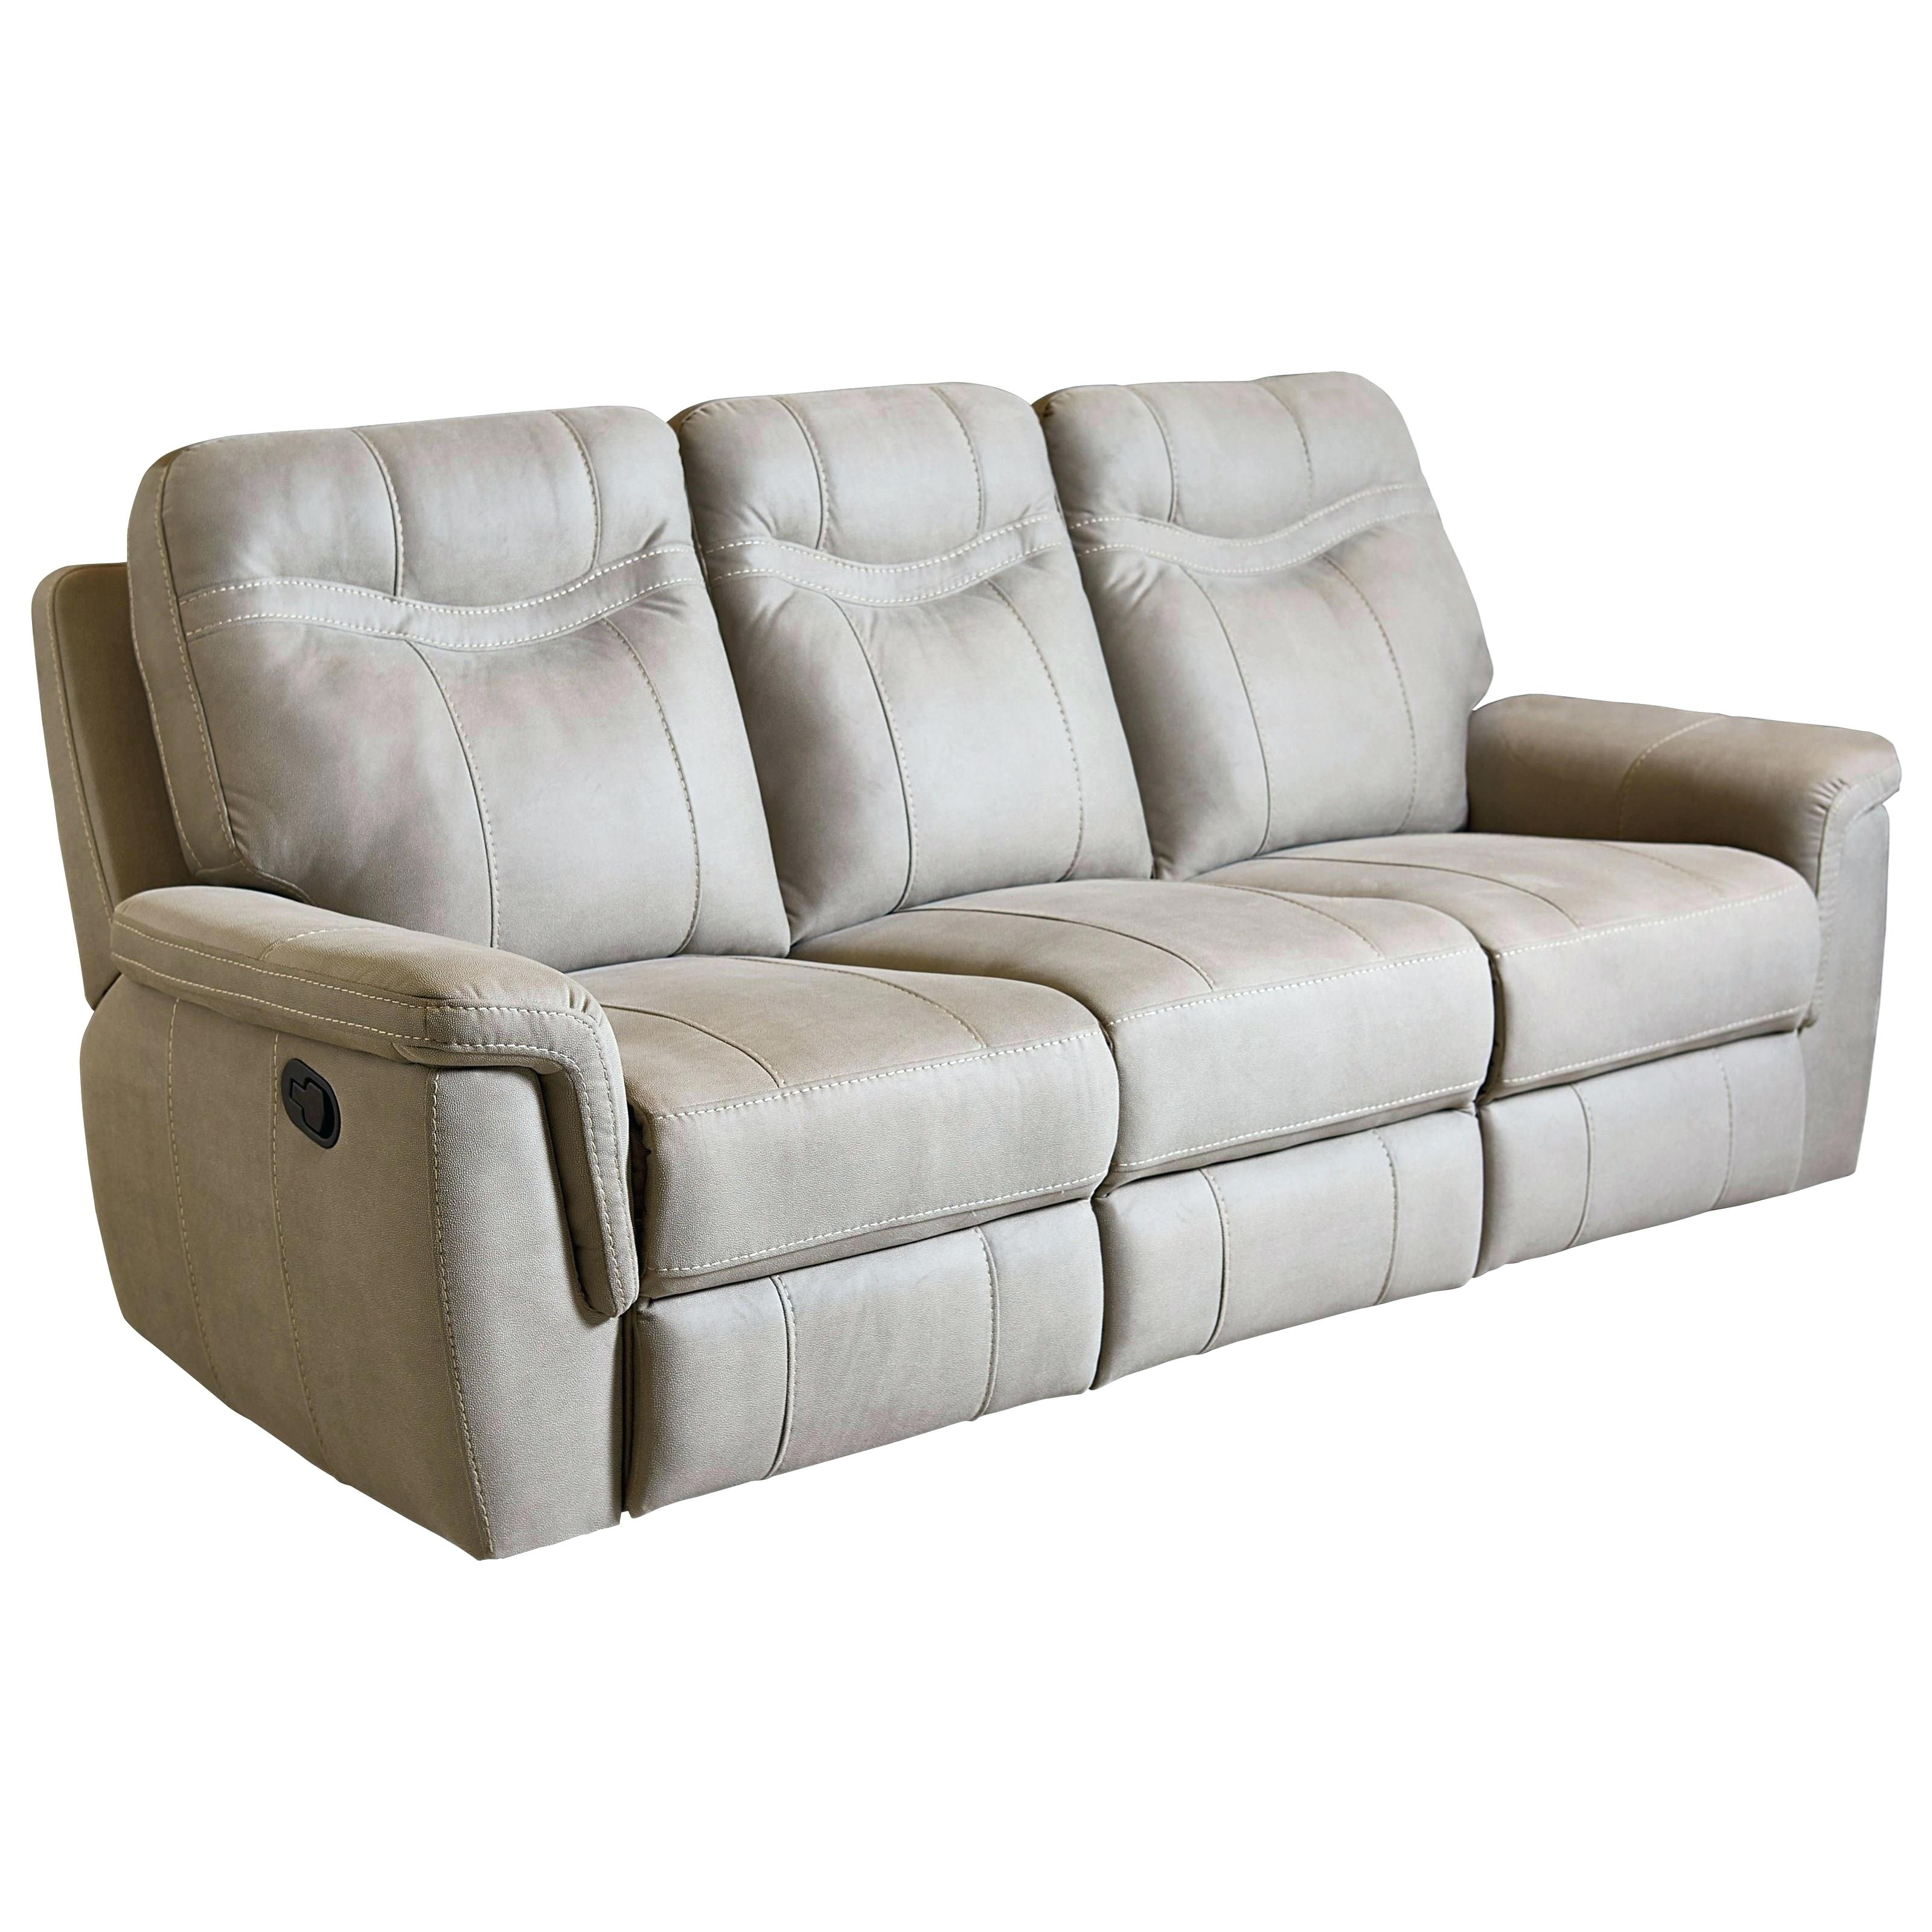 Reclining Sofas Sofa Leather Brown Recliner For Sale In London Kijiji – Within Kijiji London Sectional Sofas (View 9 of 10)